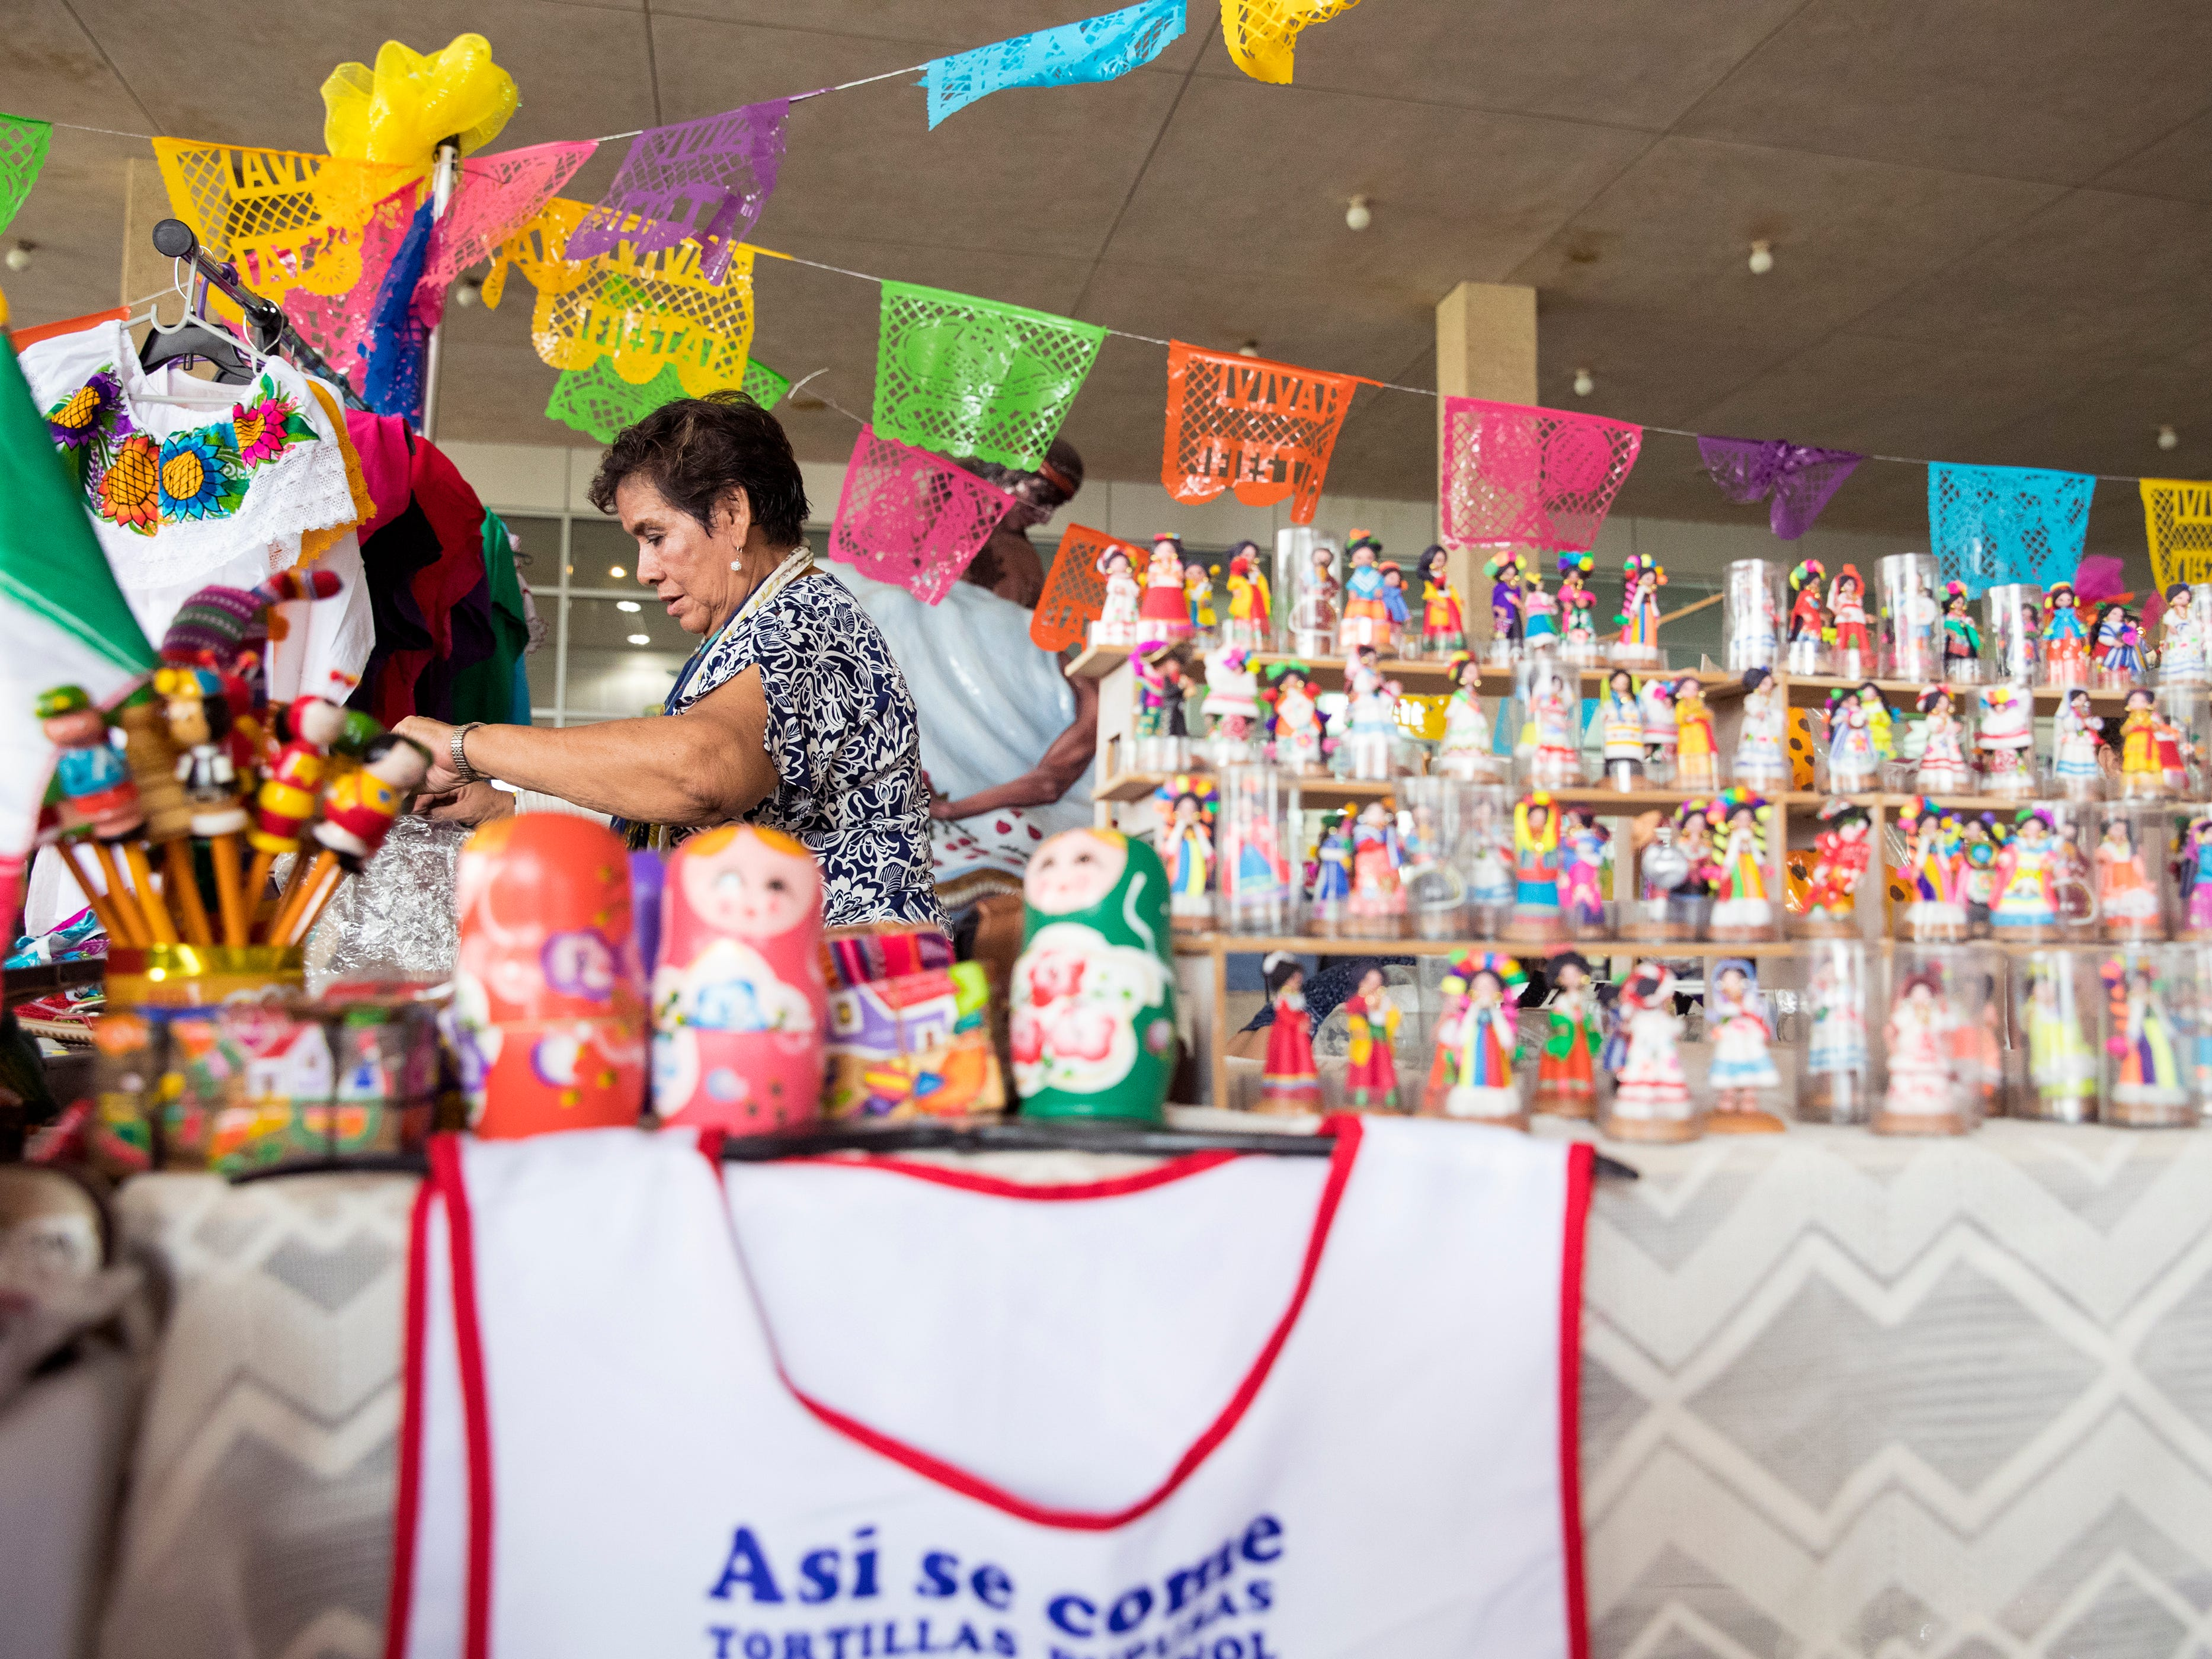 Magdalena Martinez sets up her booth in The Mercado in the American Bank Center before Fiesta de la Flor opens on Friday, April 12, 2019. The festival is in honor of the late Tejano singer Selena Quintanilla-Perez. The two-day music event is held in Corpus Christi, Texas.